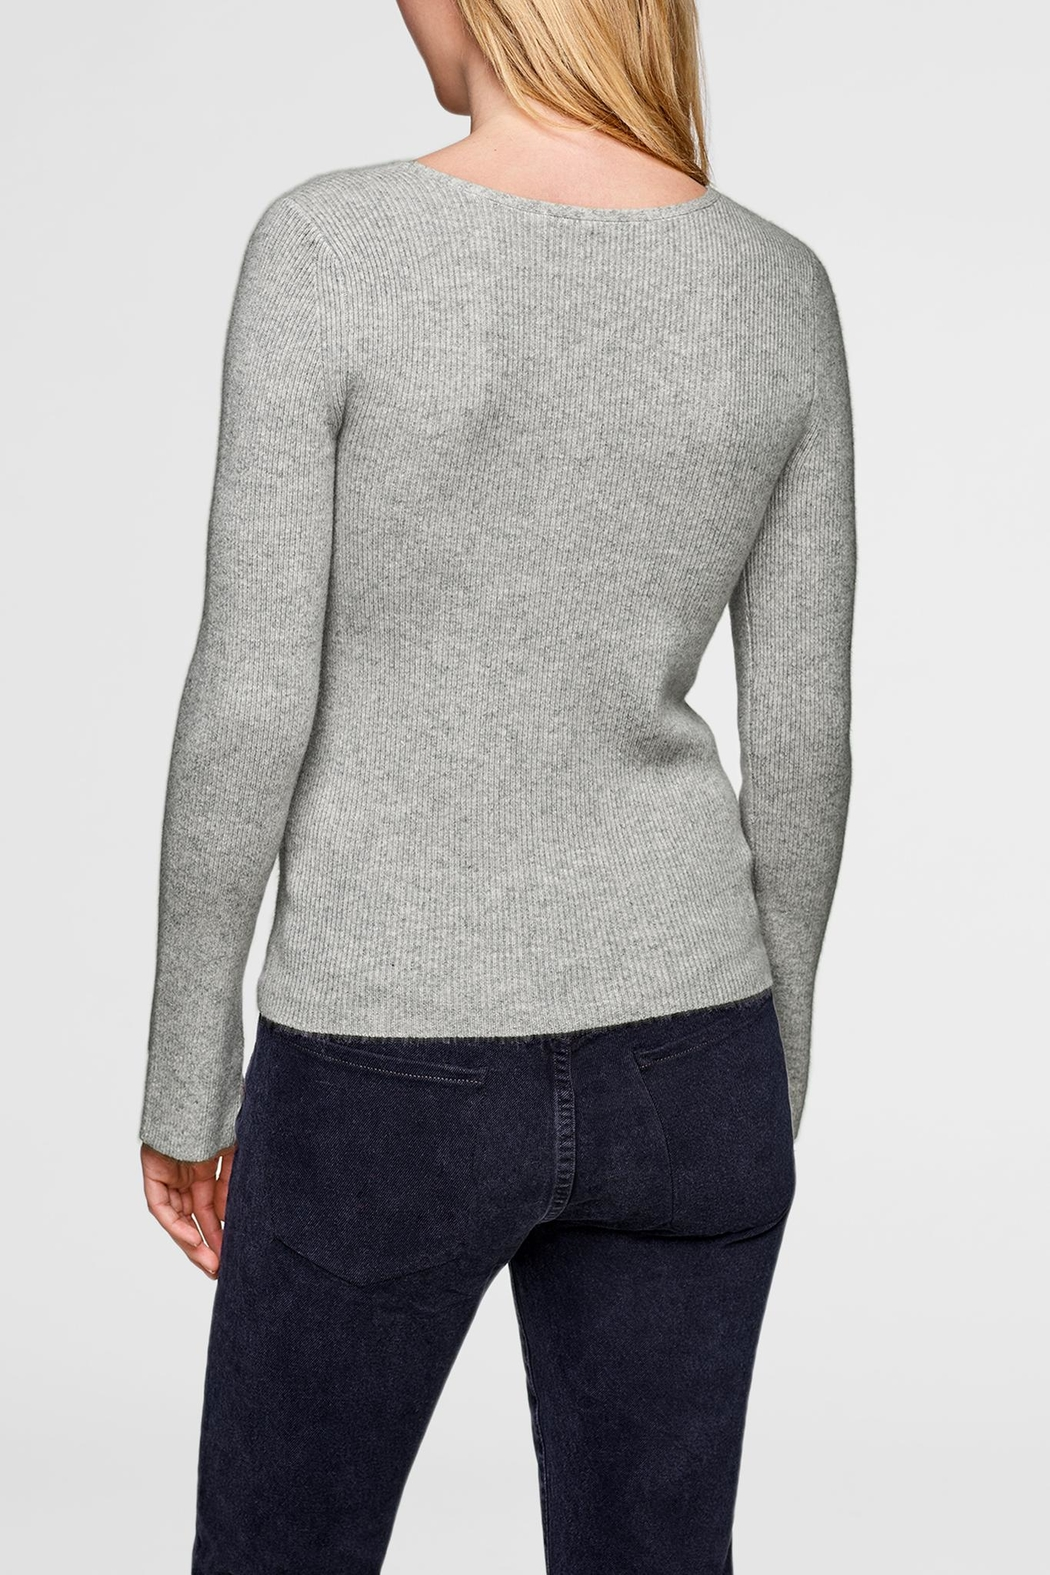 White + Warren Asymmetrical Neck Pullover - Front Full Image